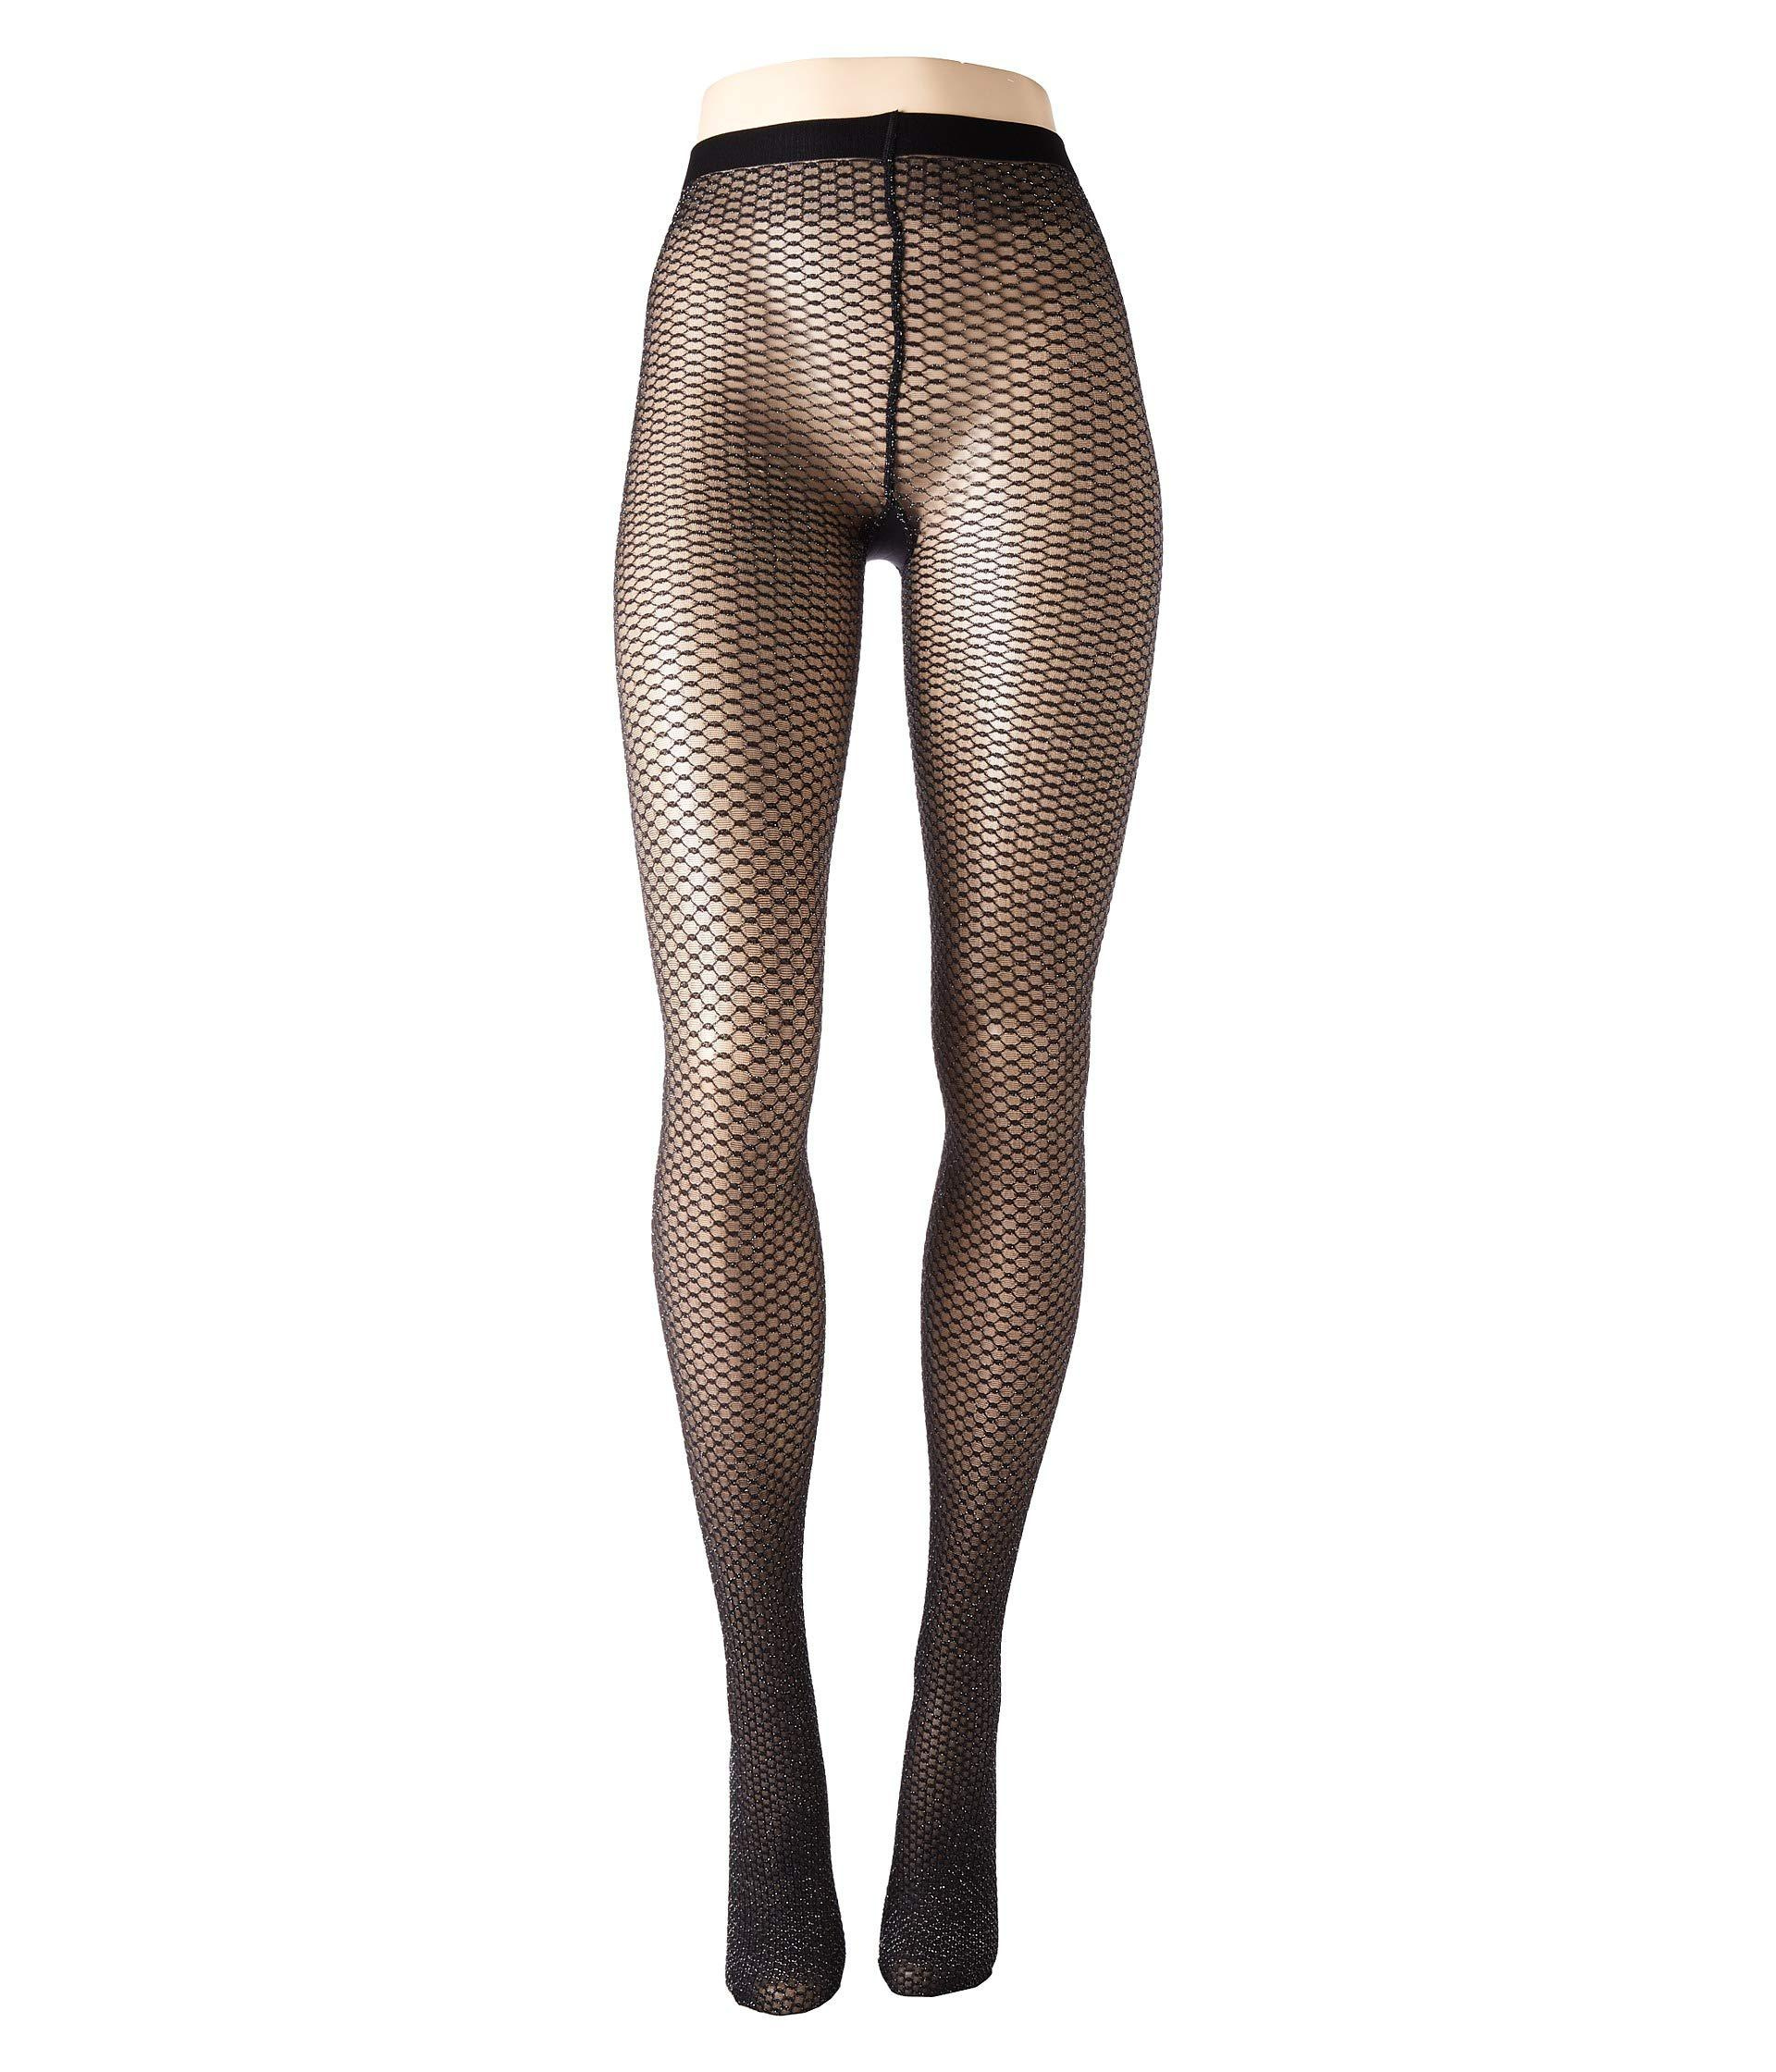 ad61a390b62 Wolford Night Sparkle Tights (black silver) Hose in Black - Lyst